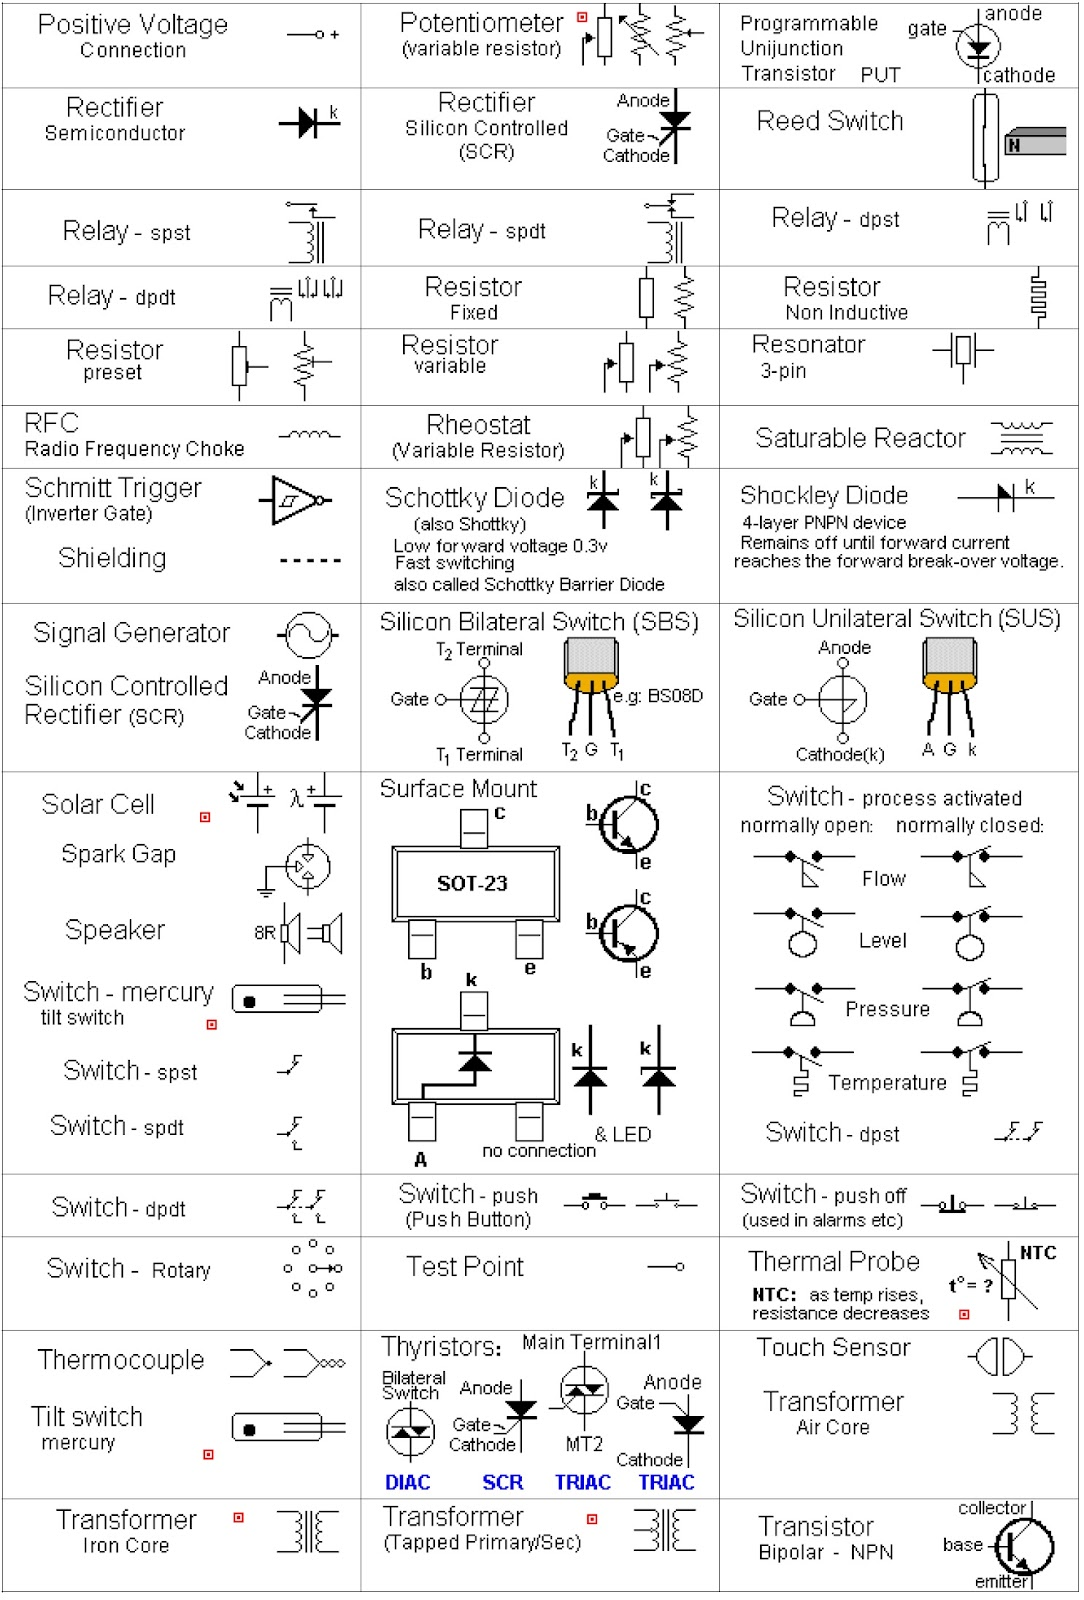 Beautiful Control Circuit Symbols Gallery - The Best Electrical ...